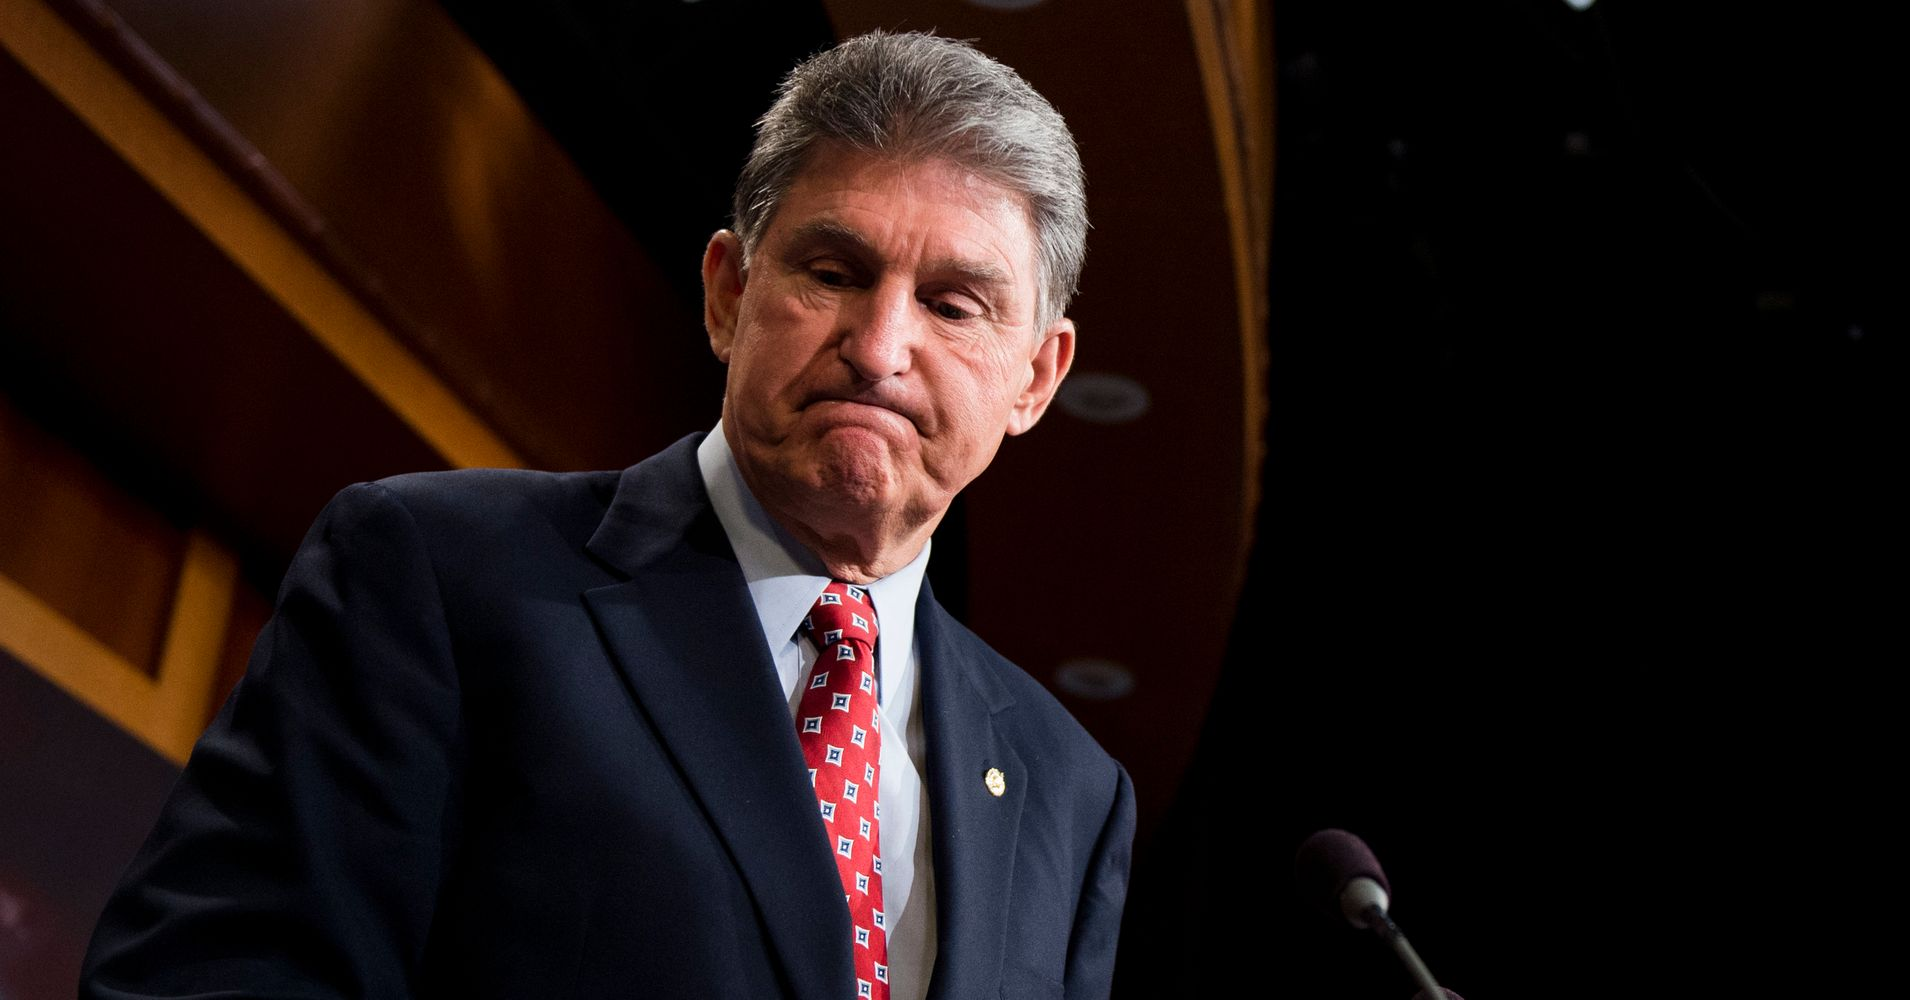 Manchin championed the Miners Protection Act to save health care for coal miners and In 2017 he successfully secured permanent funding for healthcare benefits for